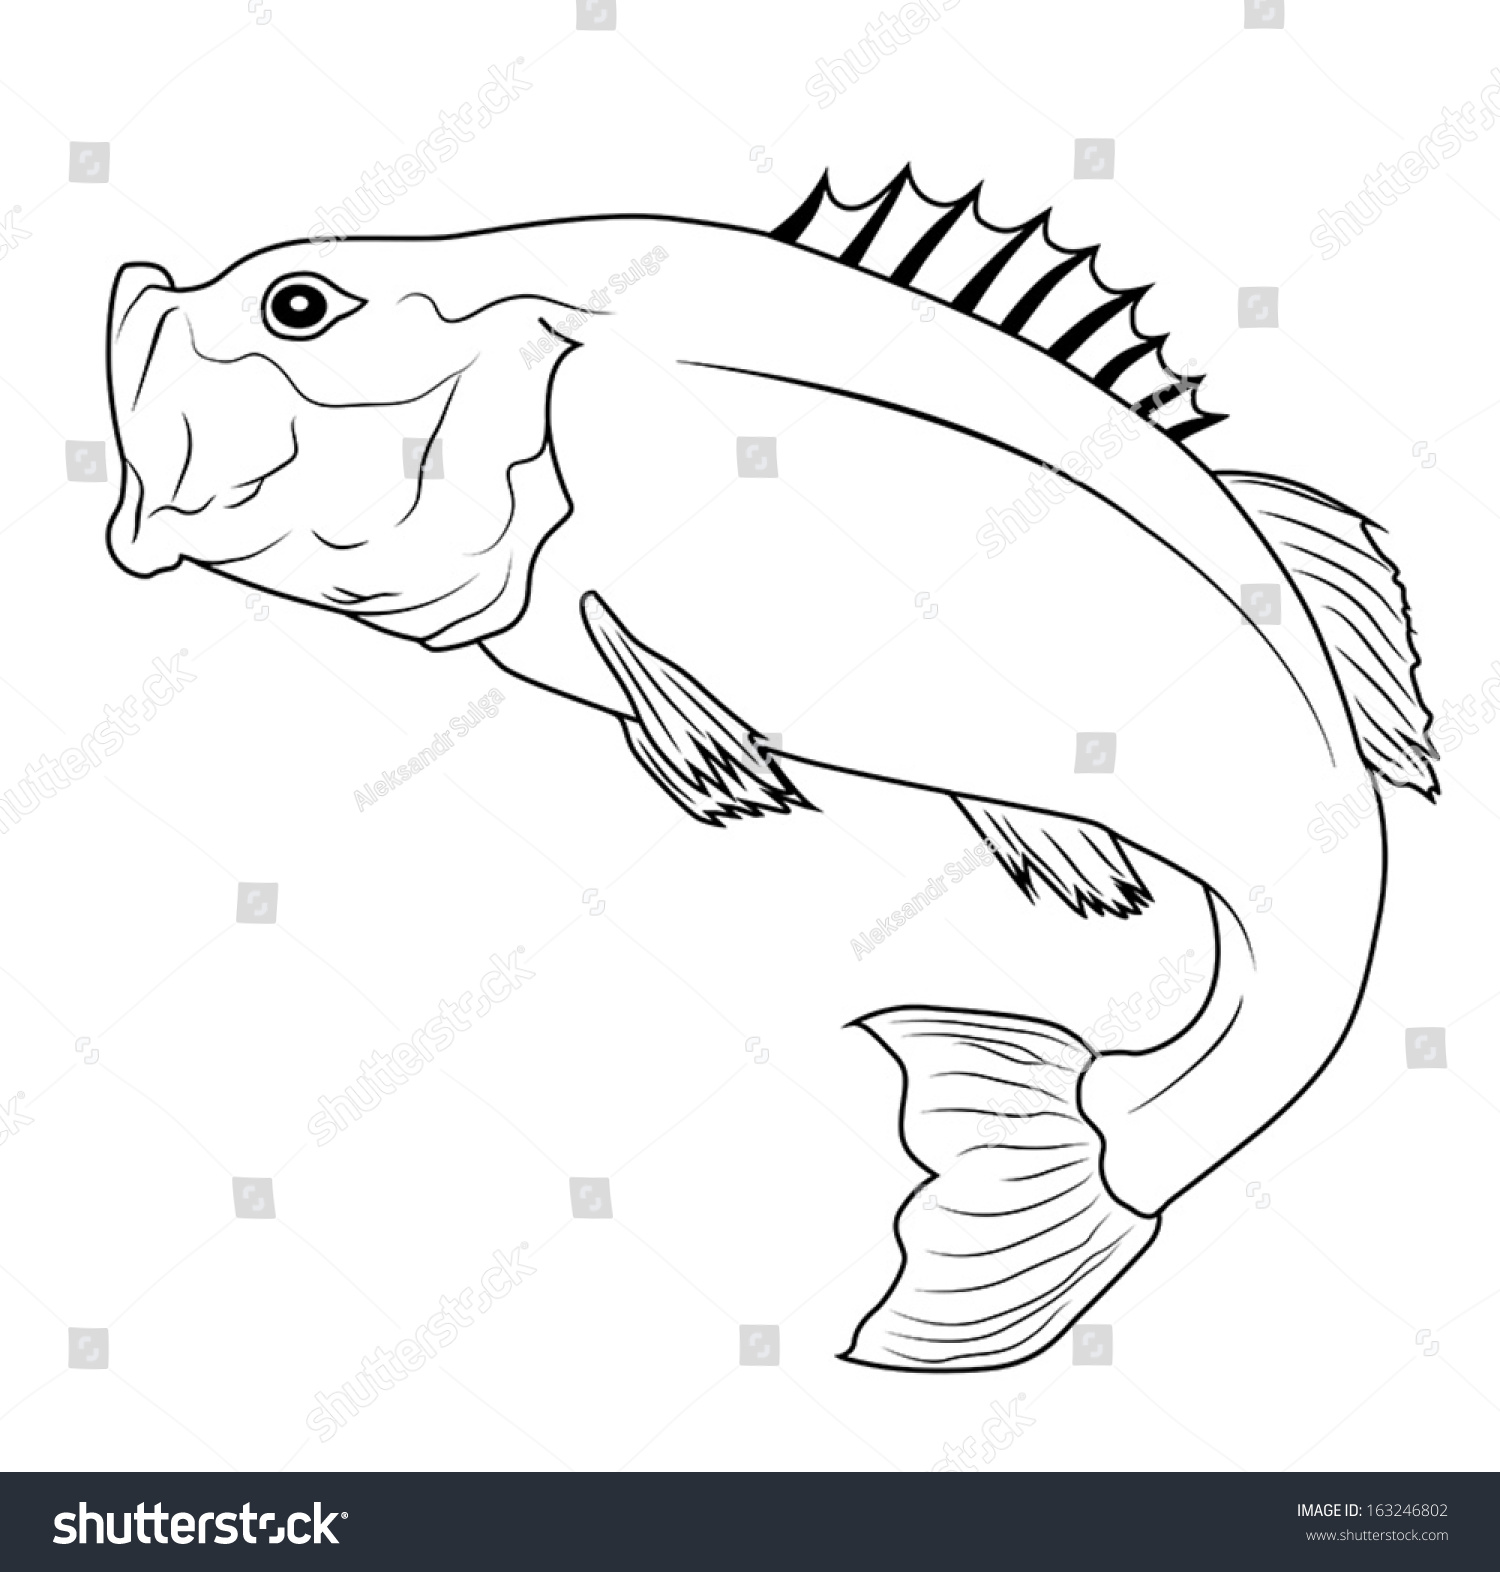 Jumping Bass Fish Outline Illustration Stock Vector Royalty Free